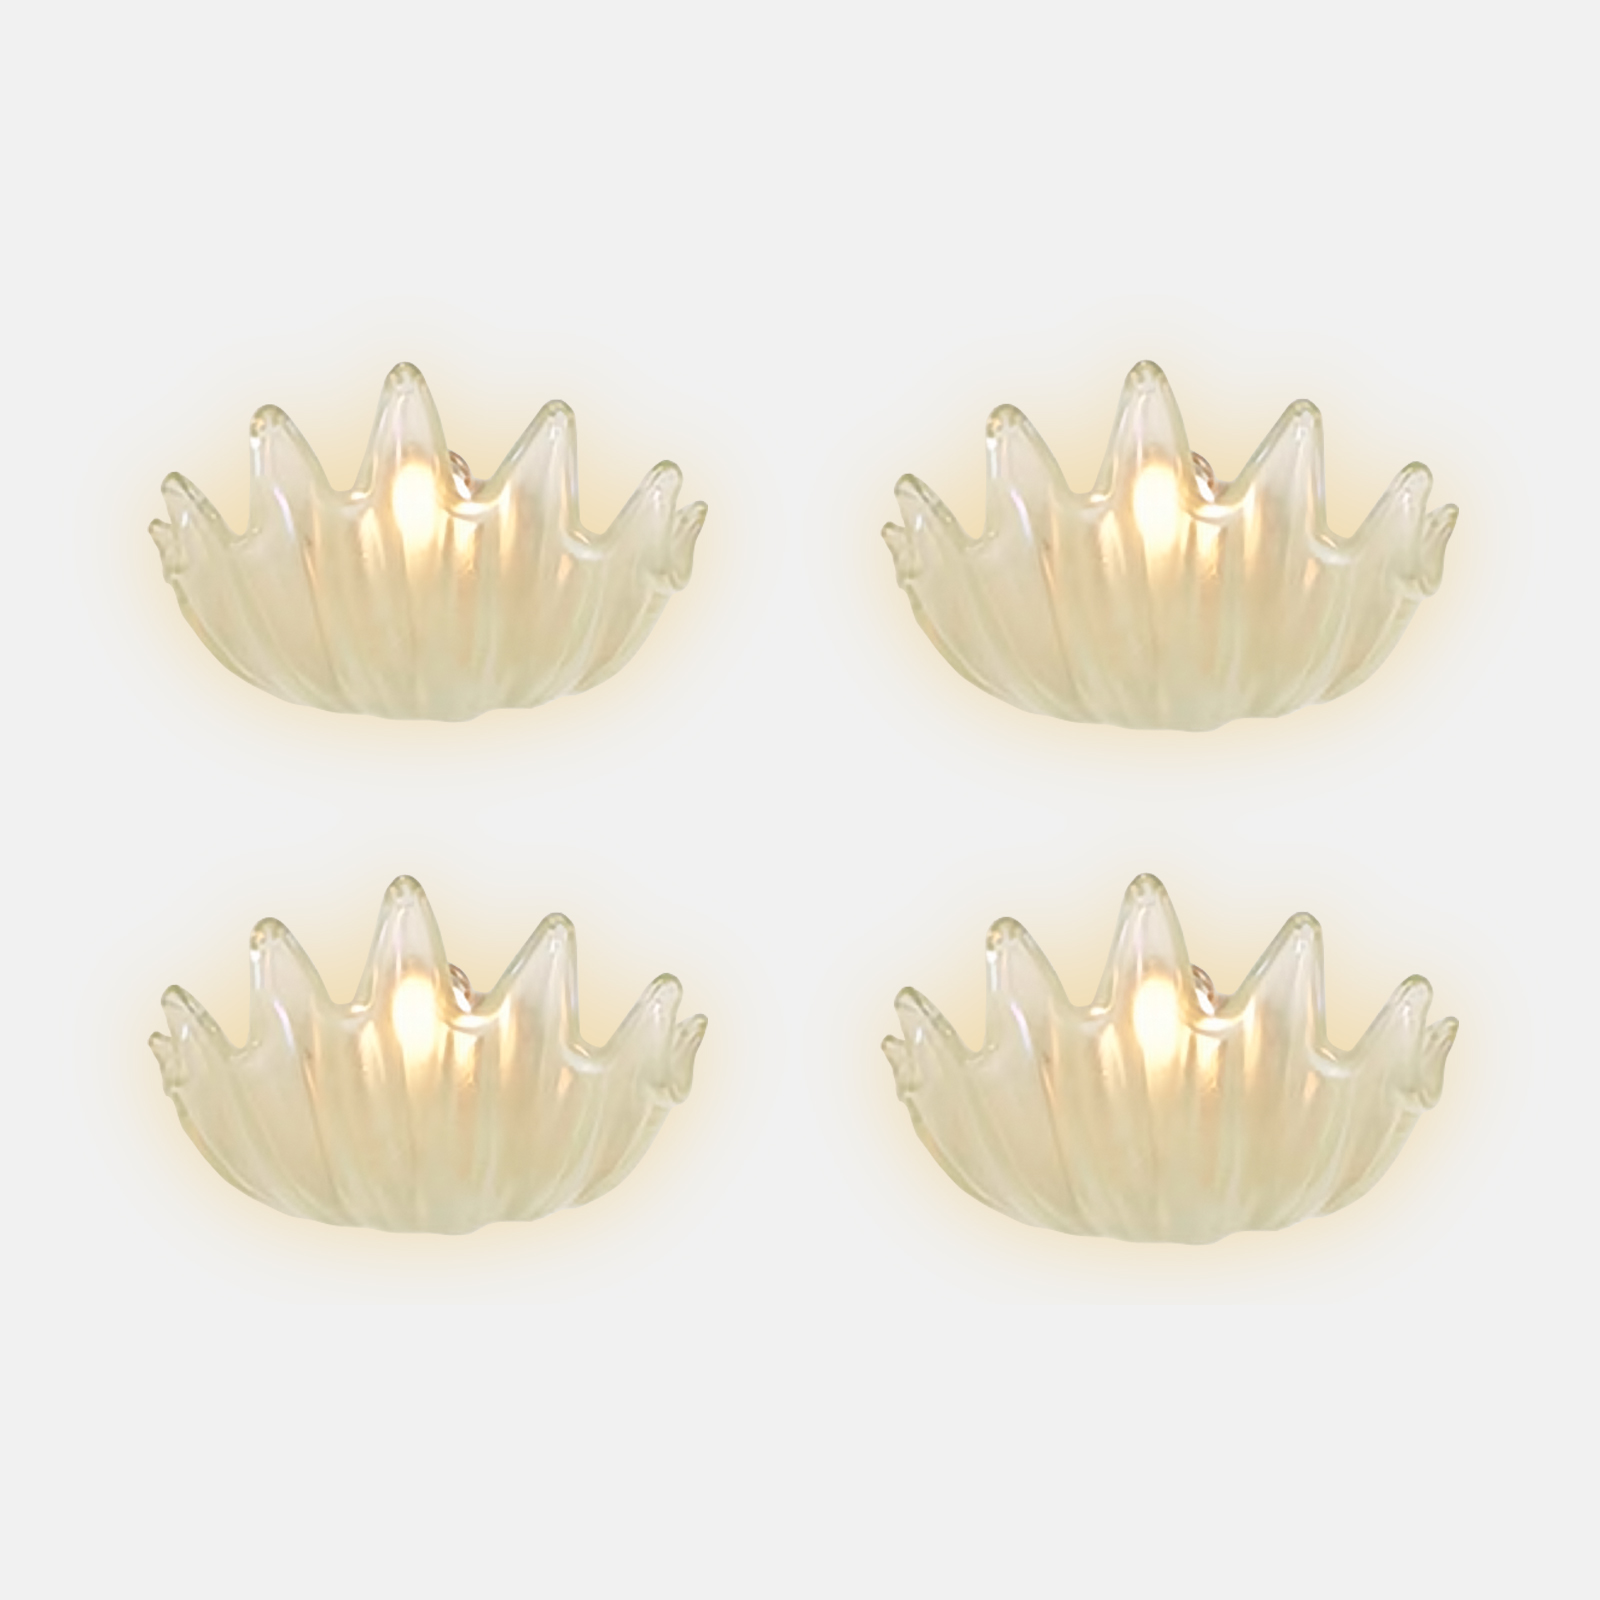 Rare Set of Four Clamshell Sconces by Ercole Barovier for Barovier & Toso | soyun k.